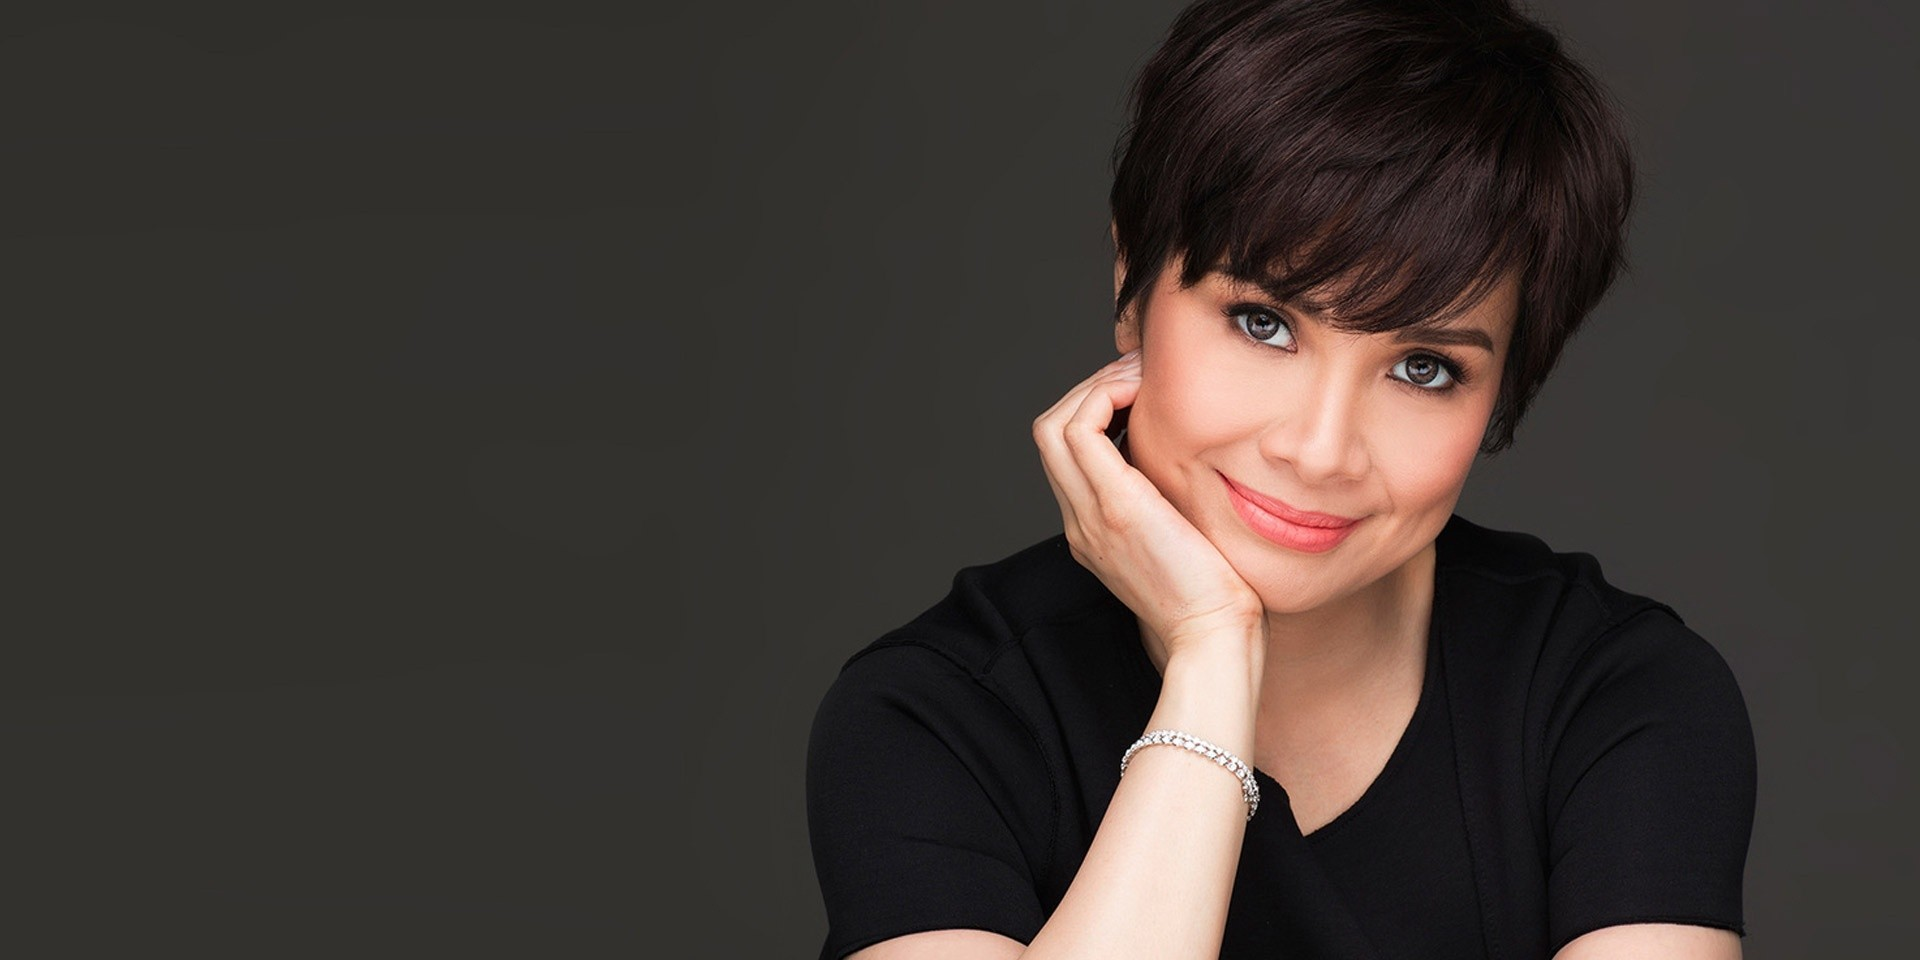 Bayanihan Musikahan raises over P2 million with Lea Salonga for Philippine International Aid support against COVID-19